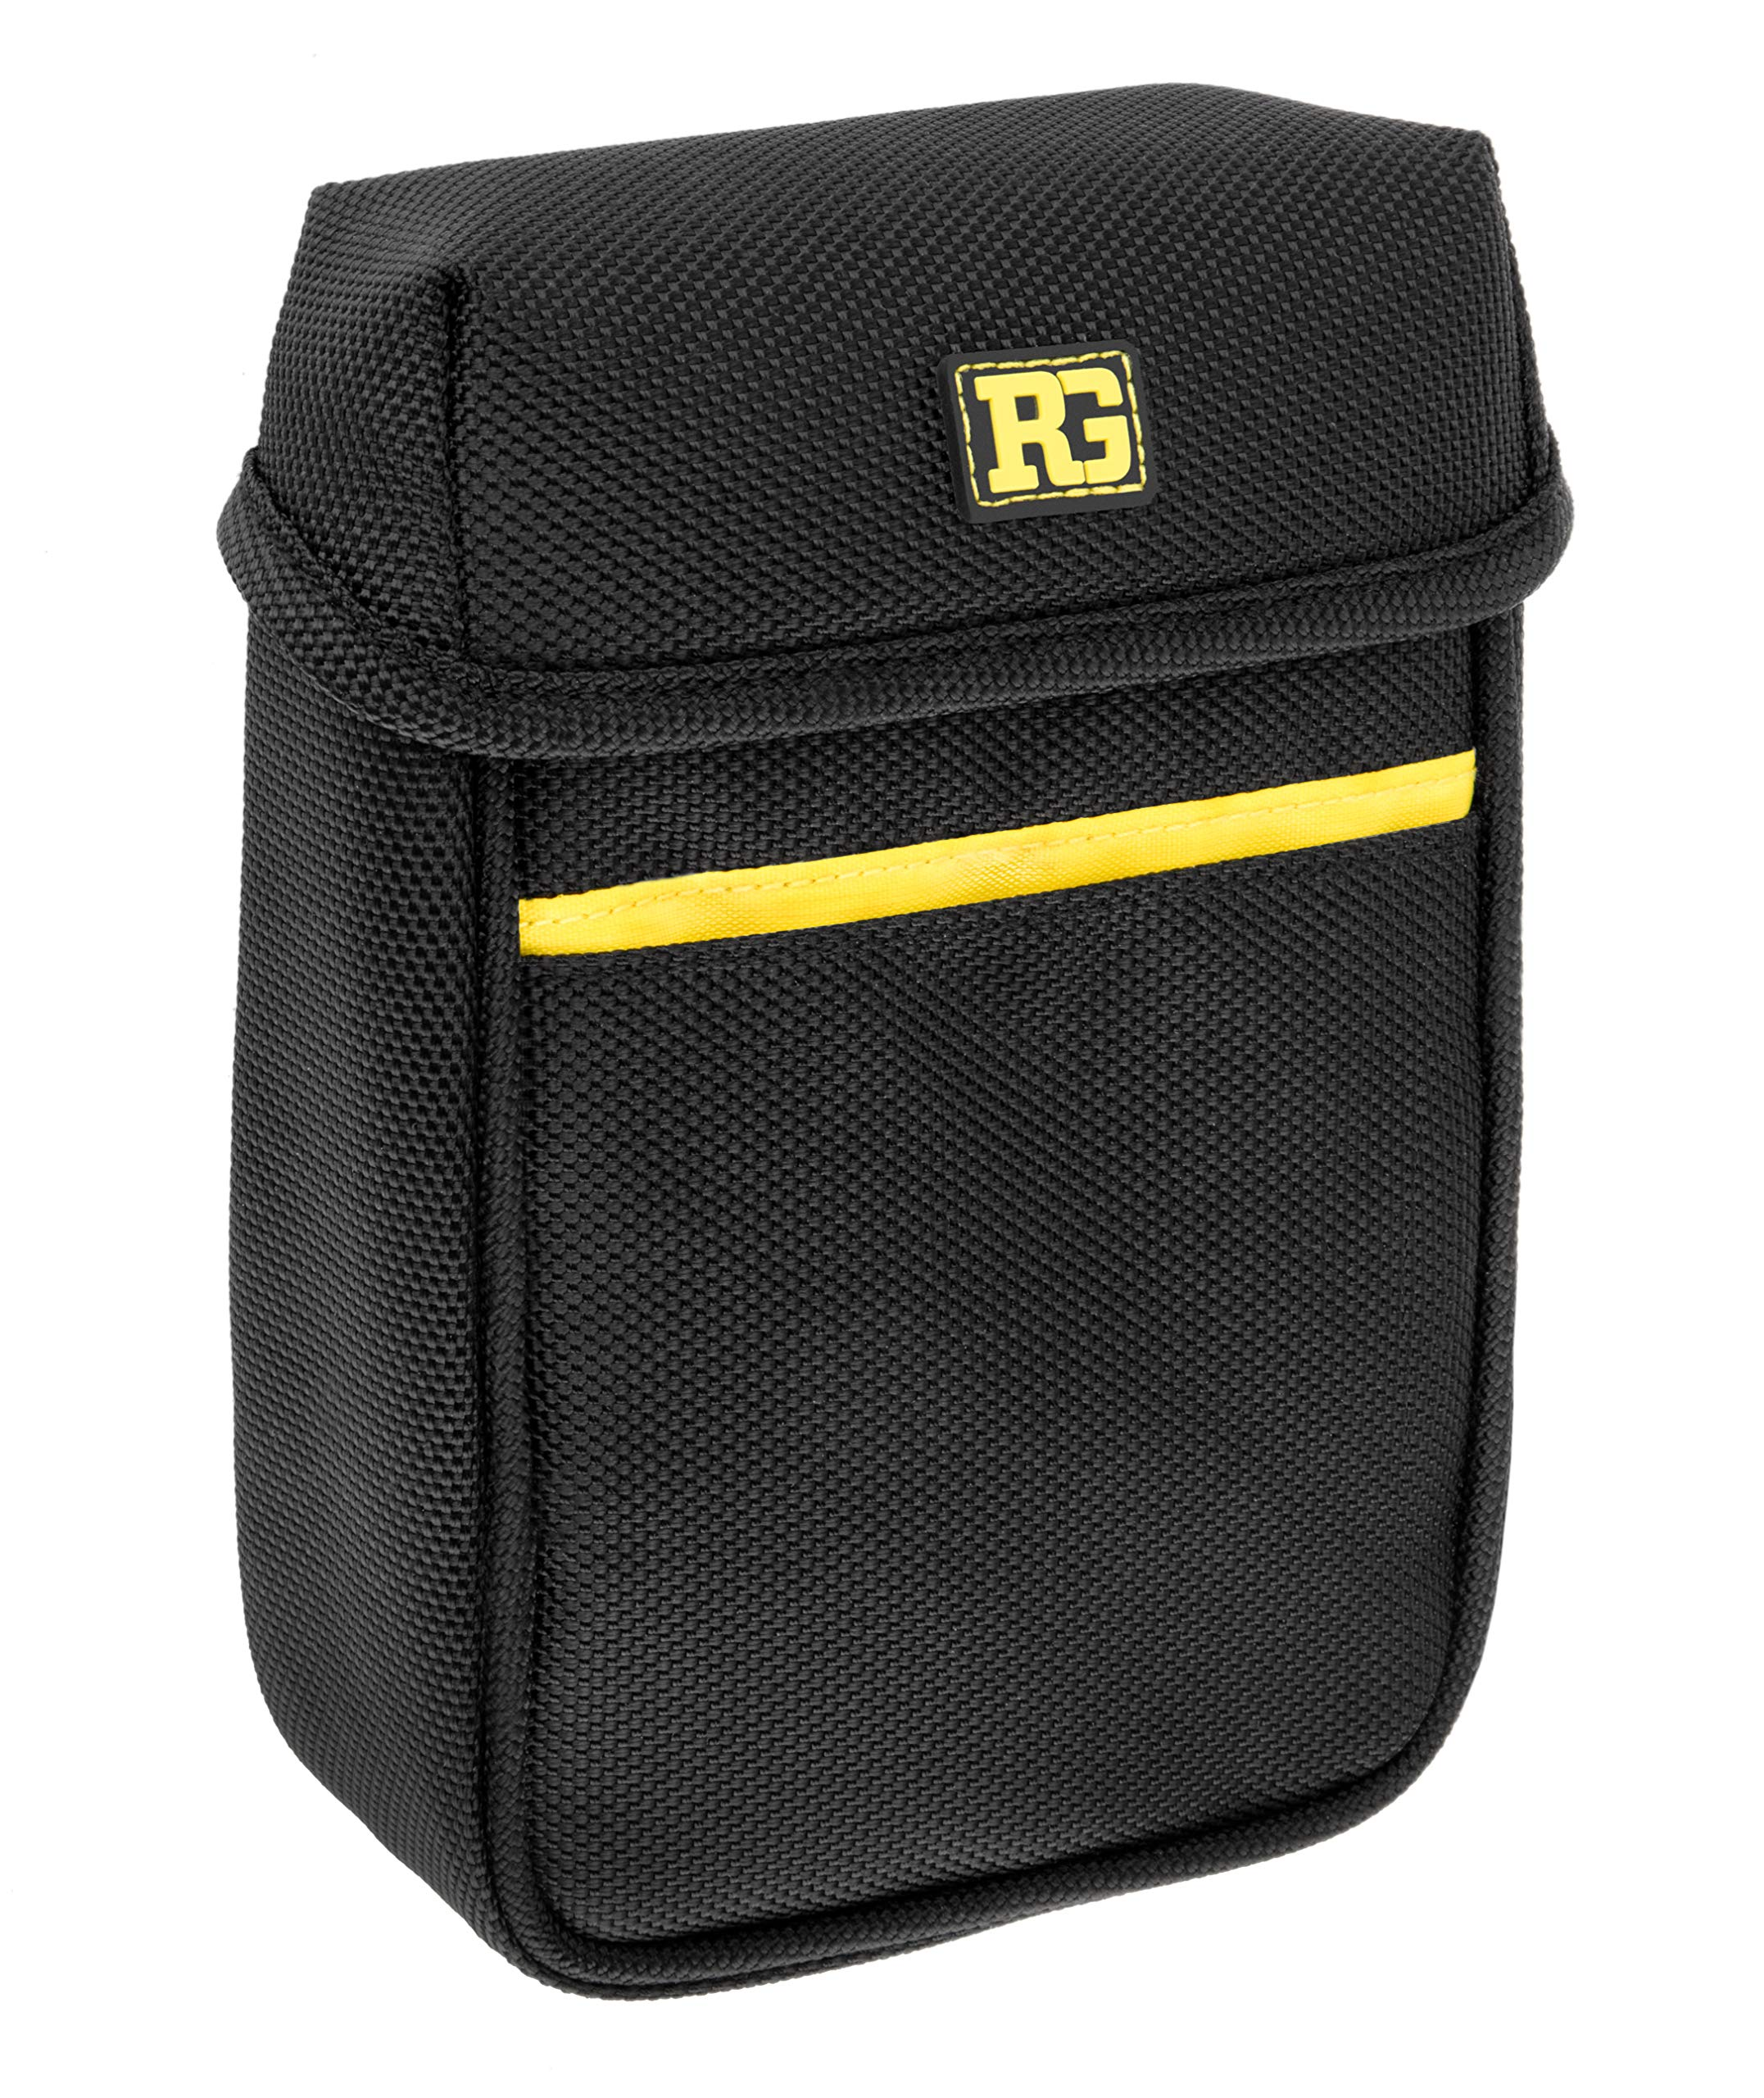 Ruggard Five Pocket Filter Pouch (up to 4 x 6)